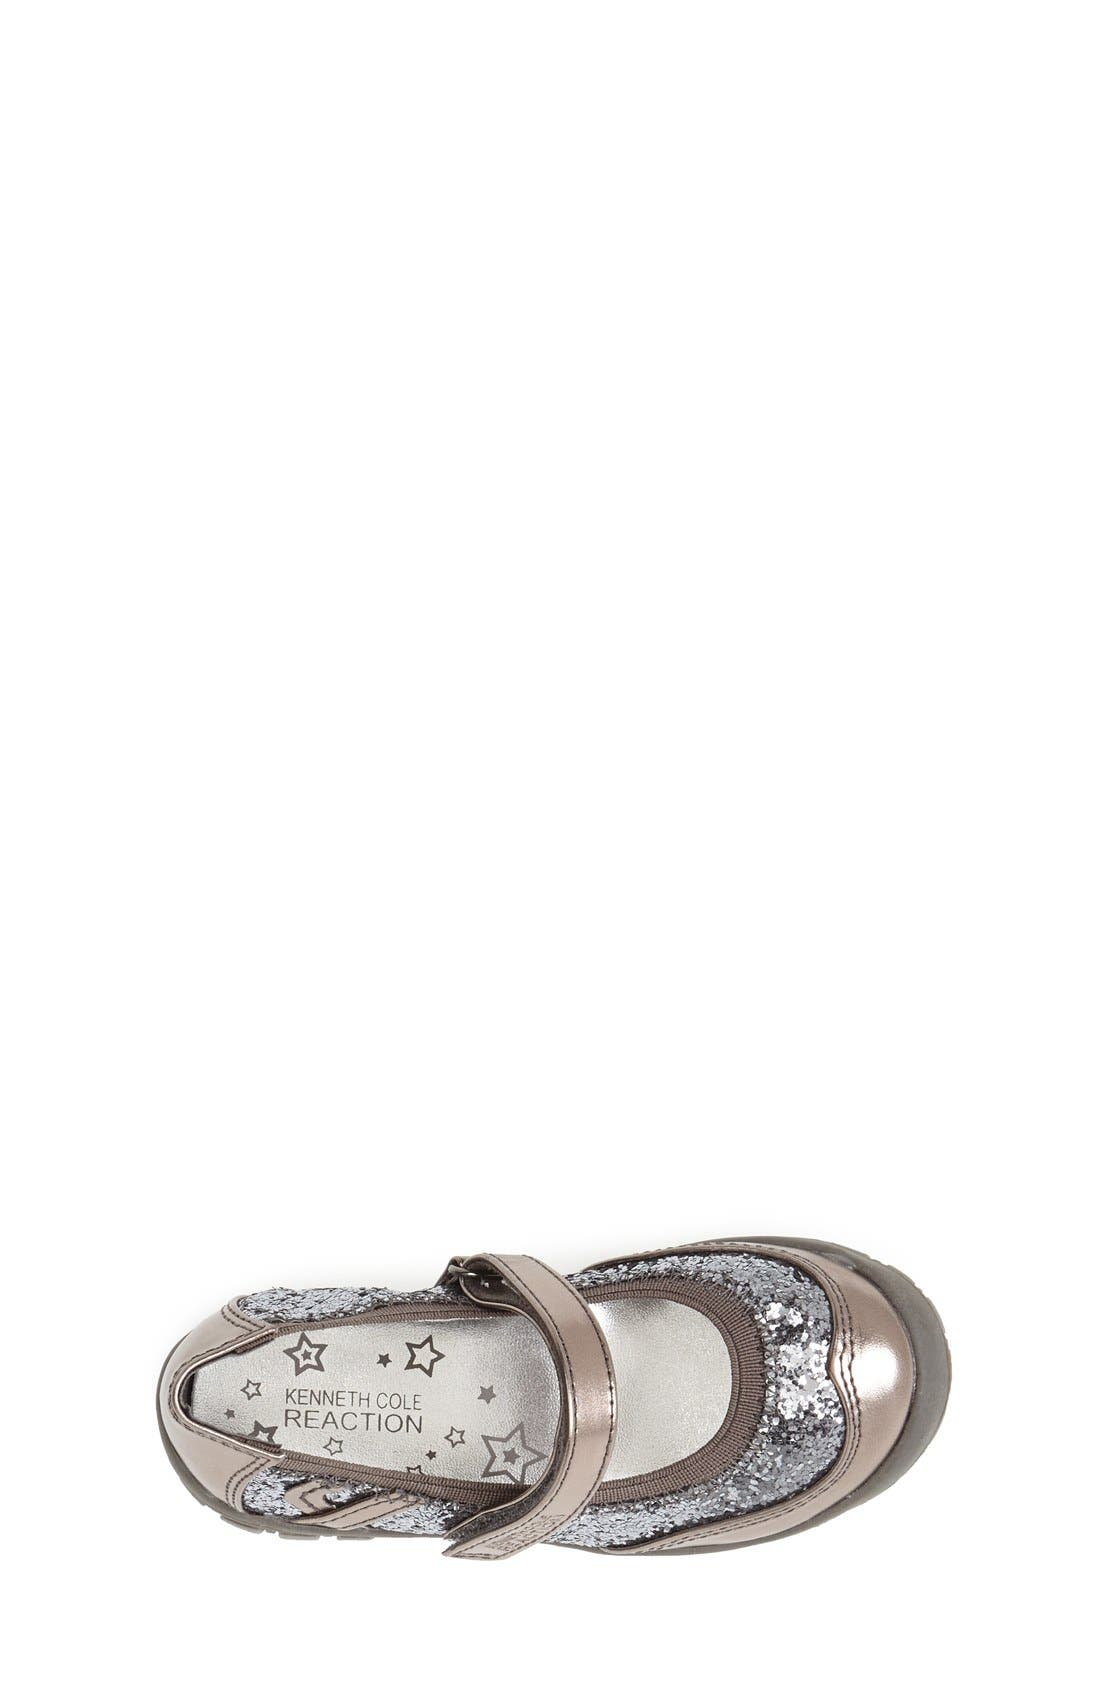 Kenneth Cole Reaction 'Leave My Bark' Mary Jane,                             Alternate thumbnail 3, color,                             Pewter